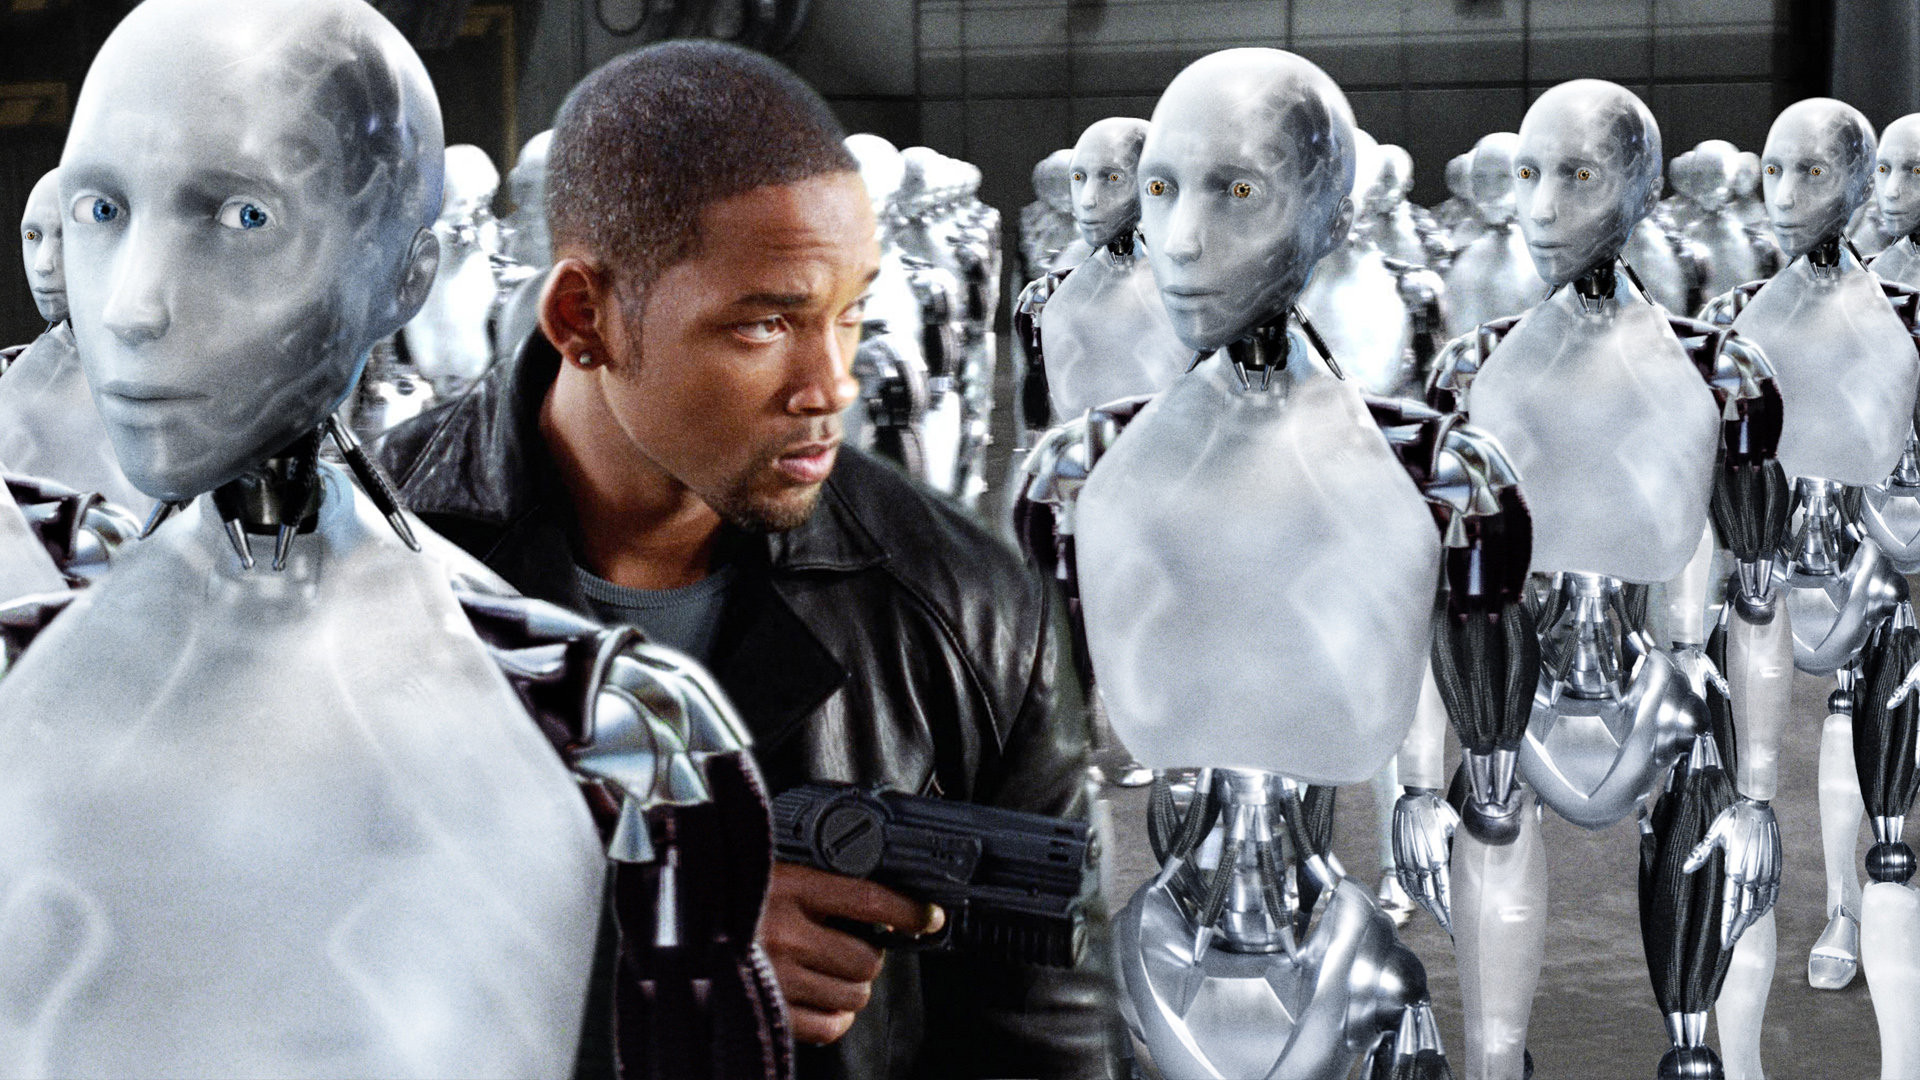 AI and the robot uprising: With so many jobs at risk, why isn't ...